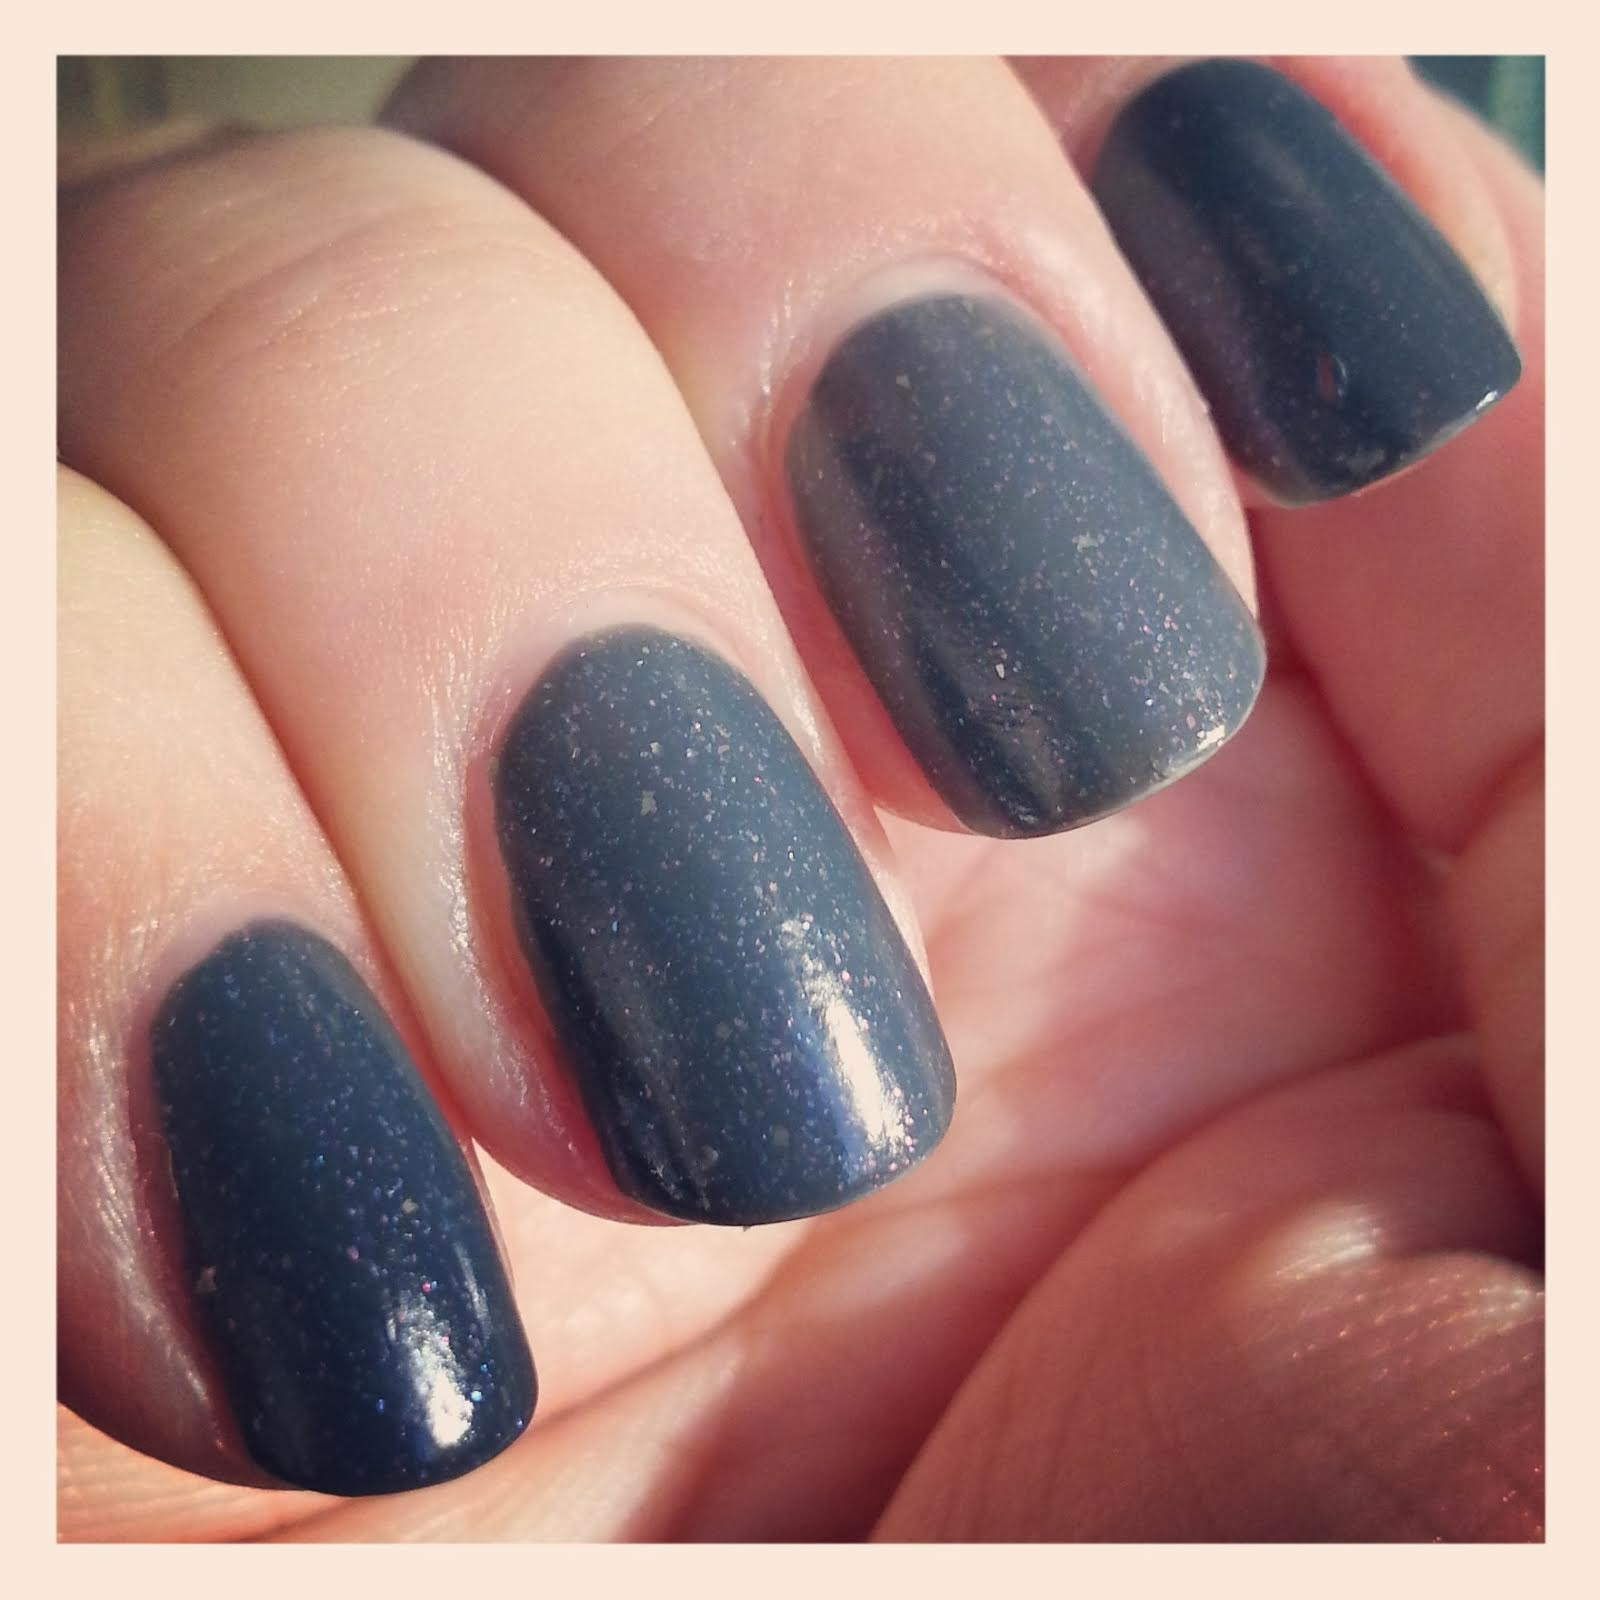 walker, decor-ranger: 2013 Nail Polish : A Year in Review : Top 3 Brands